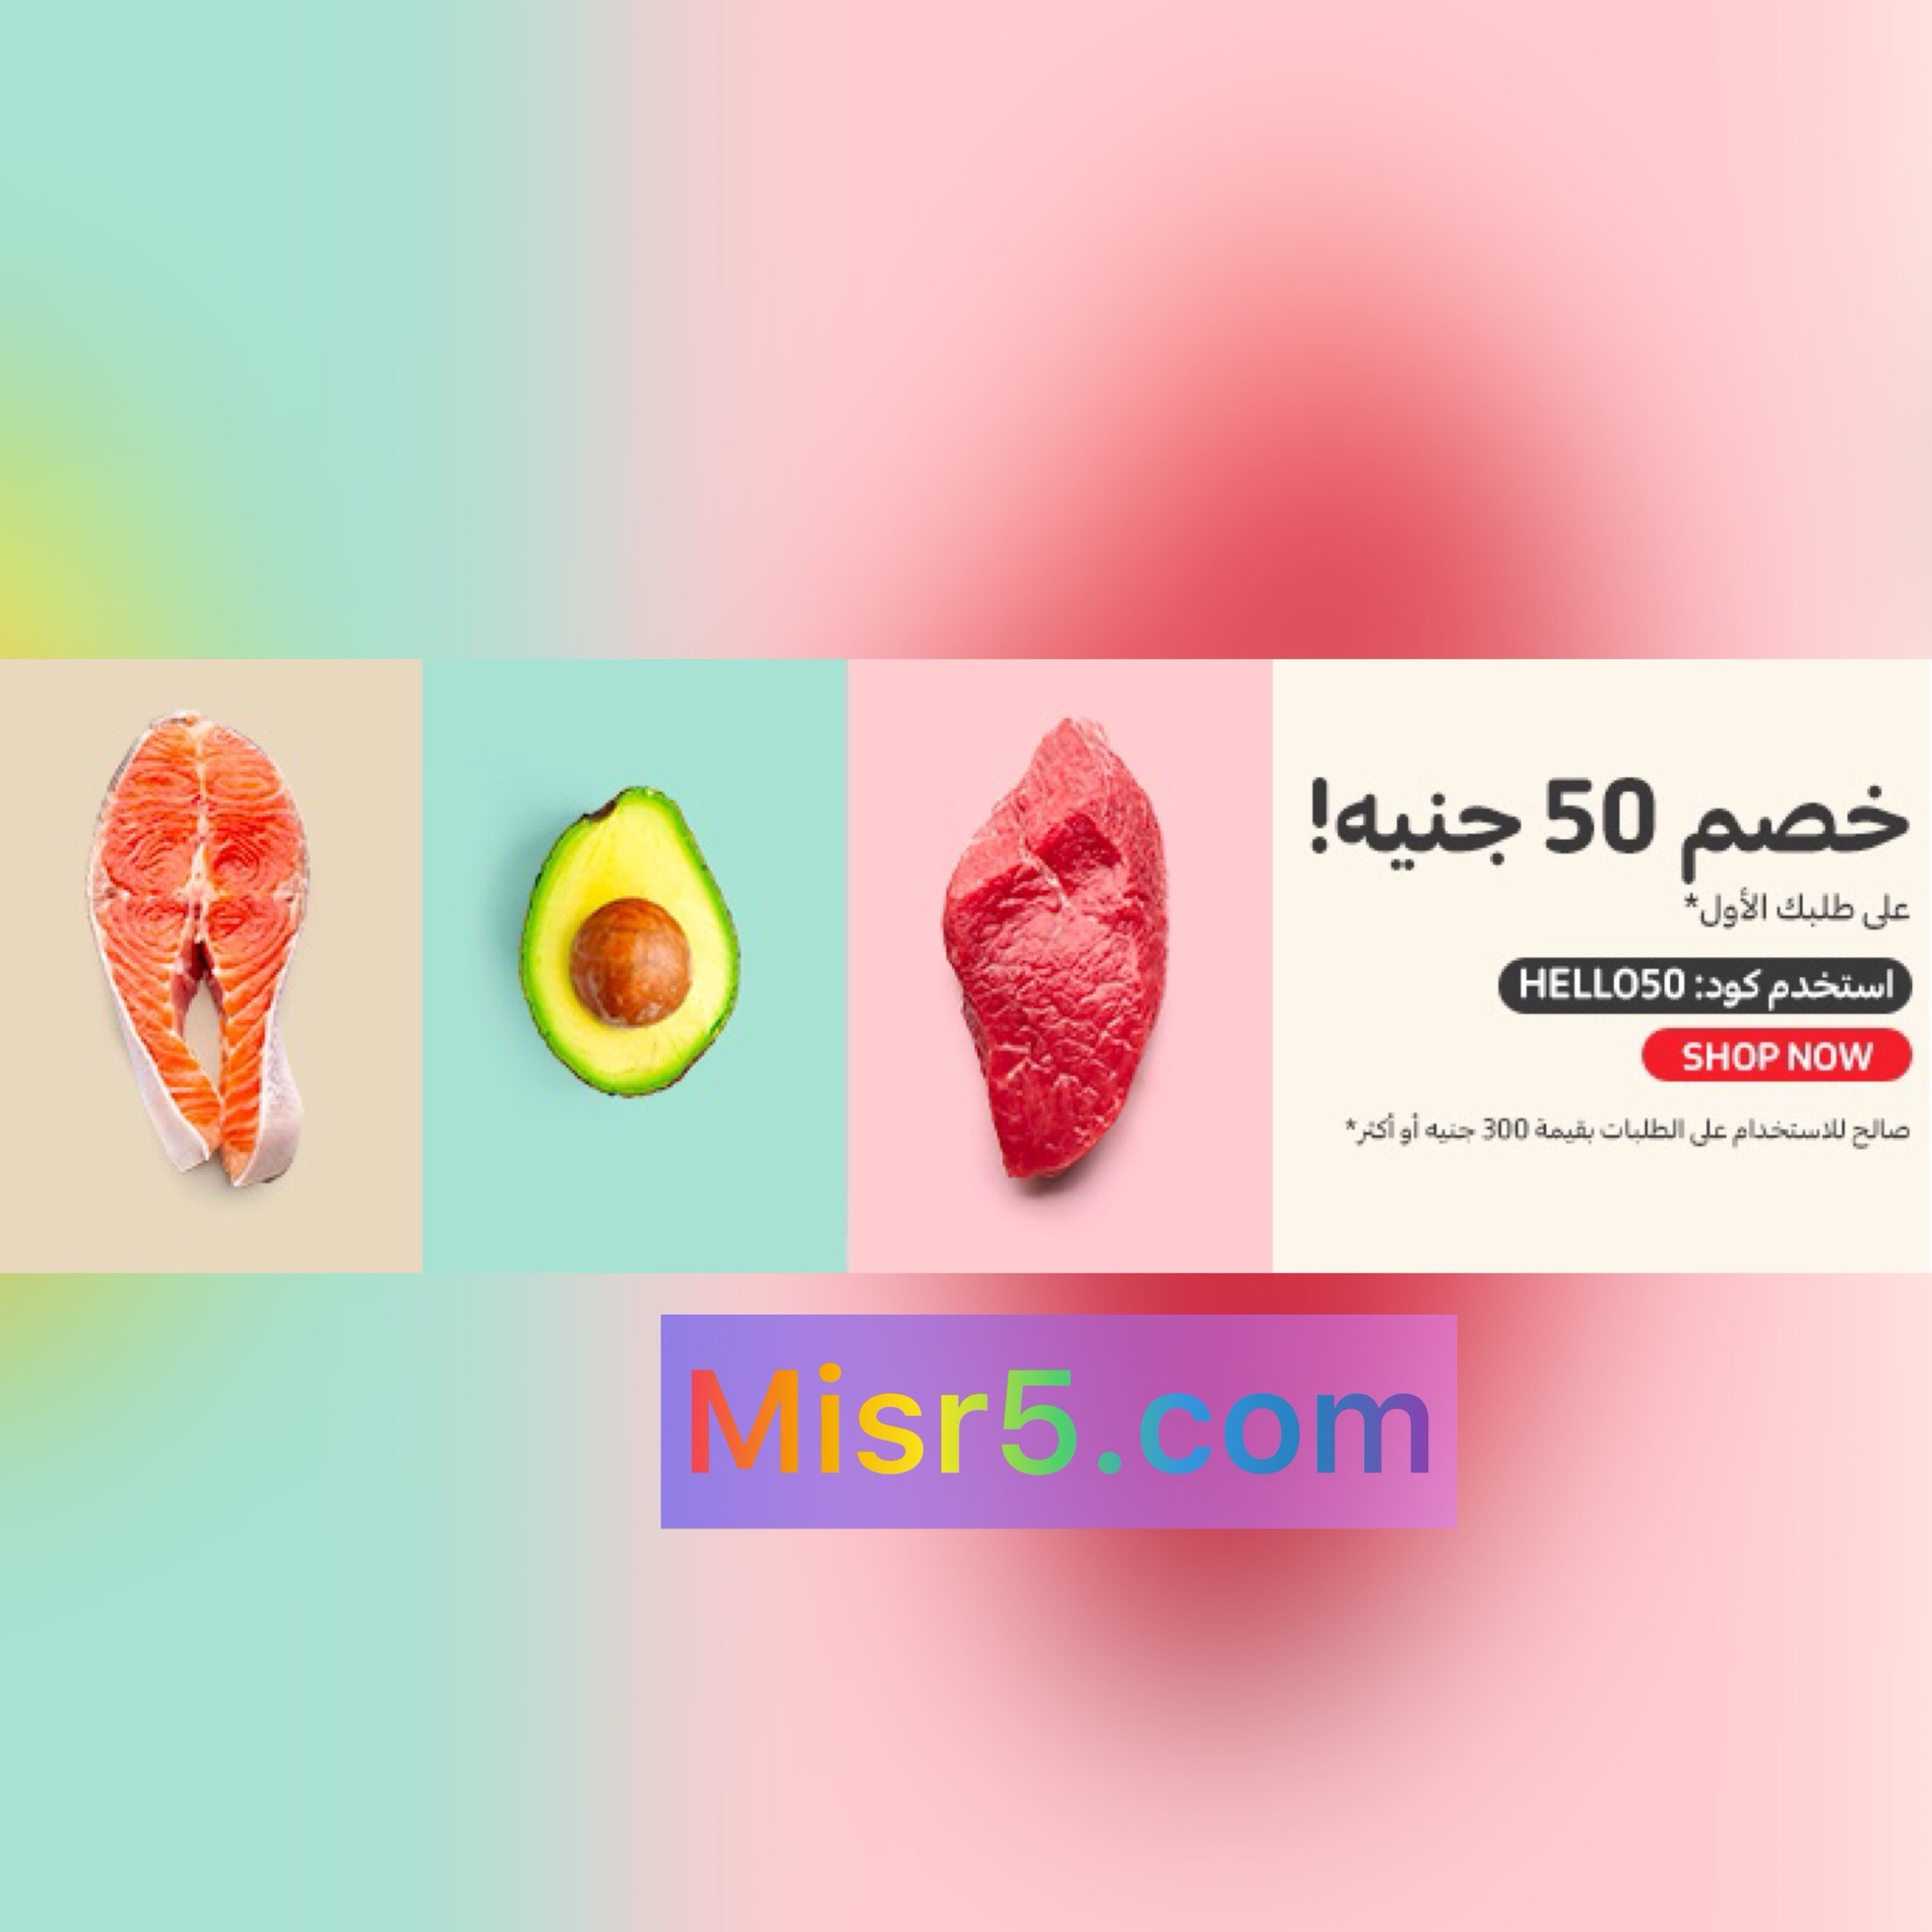 Carrefour Egypt offers and discount codes 2021